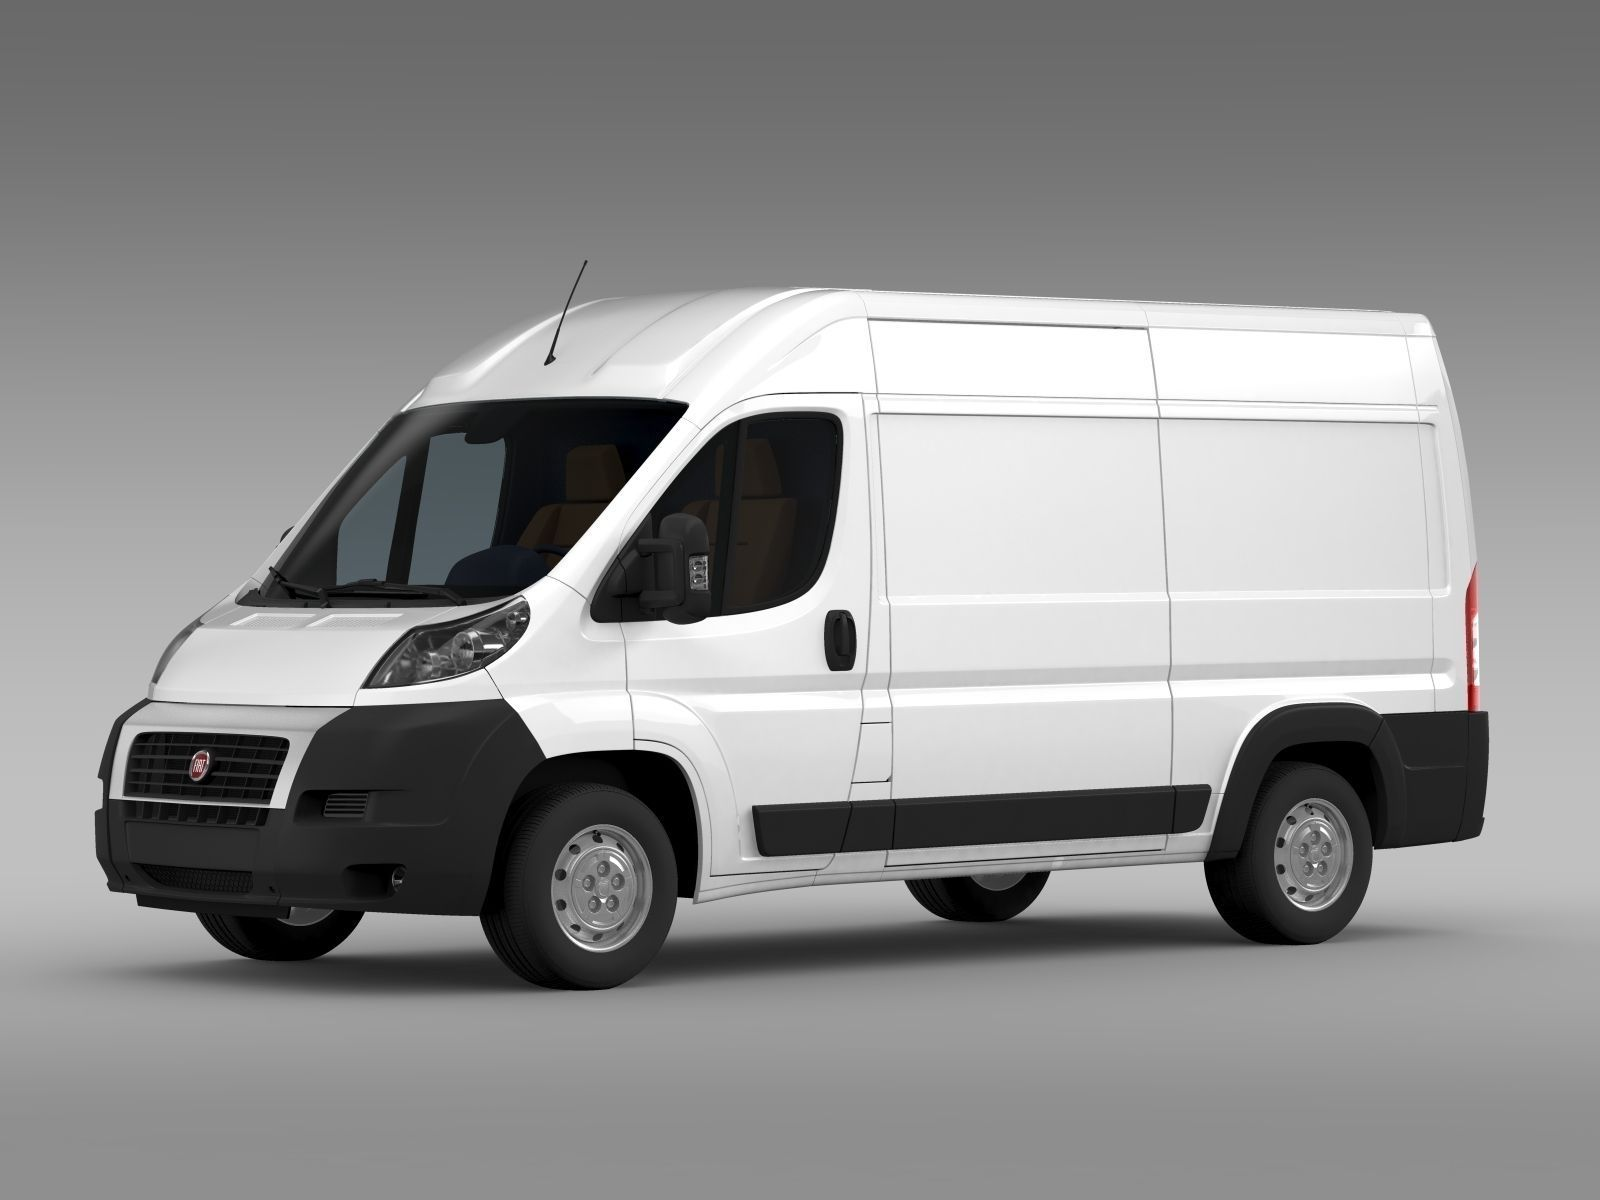 fiat ducato van l2h2 2006 2014 3d model max obj 3ds fbx. Black Bedroom Furniture Sets. Home Design Ideas